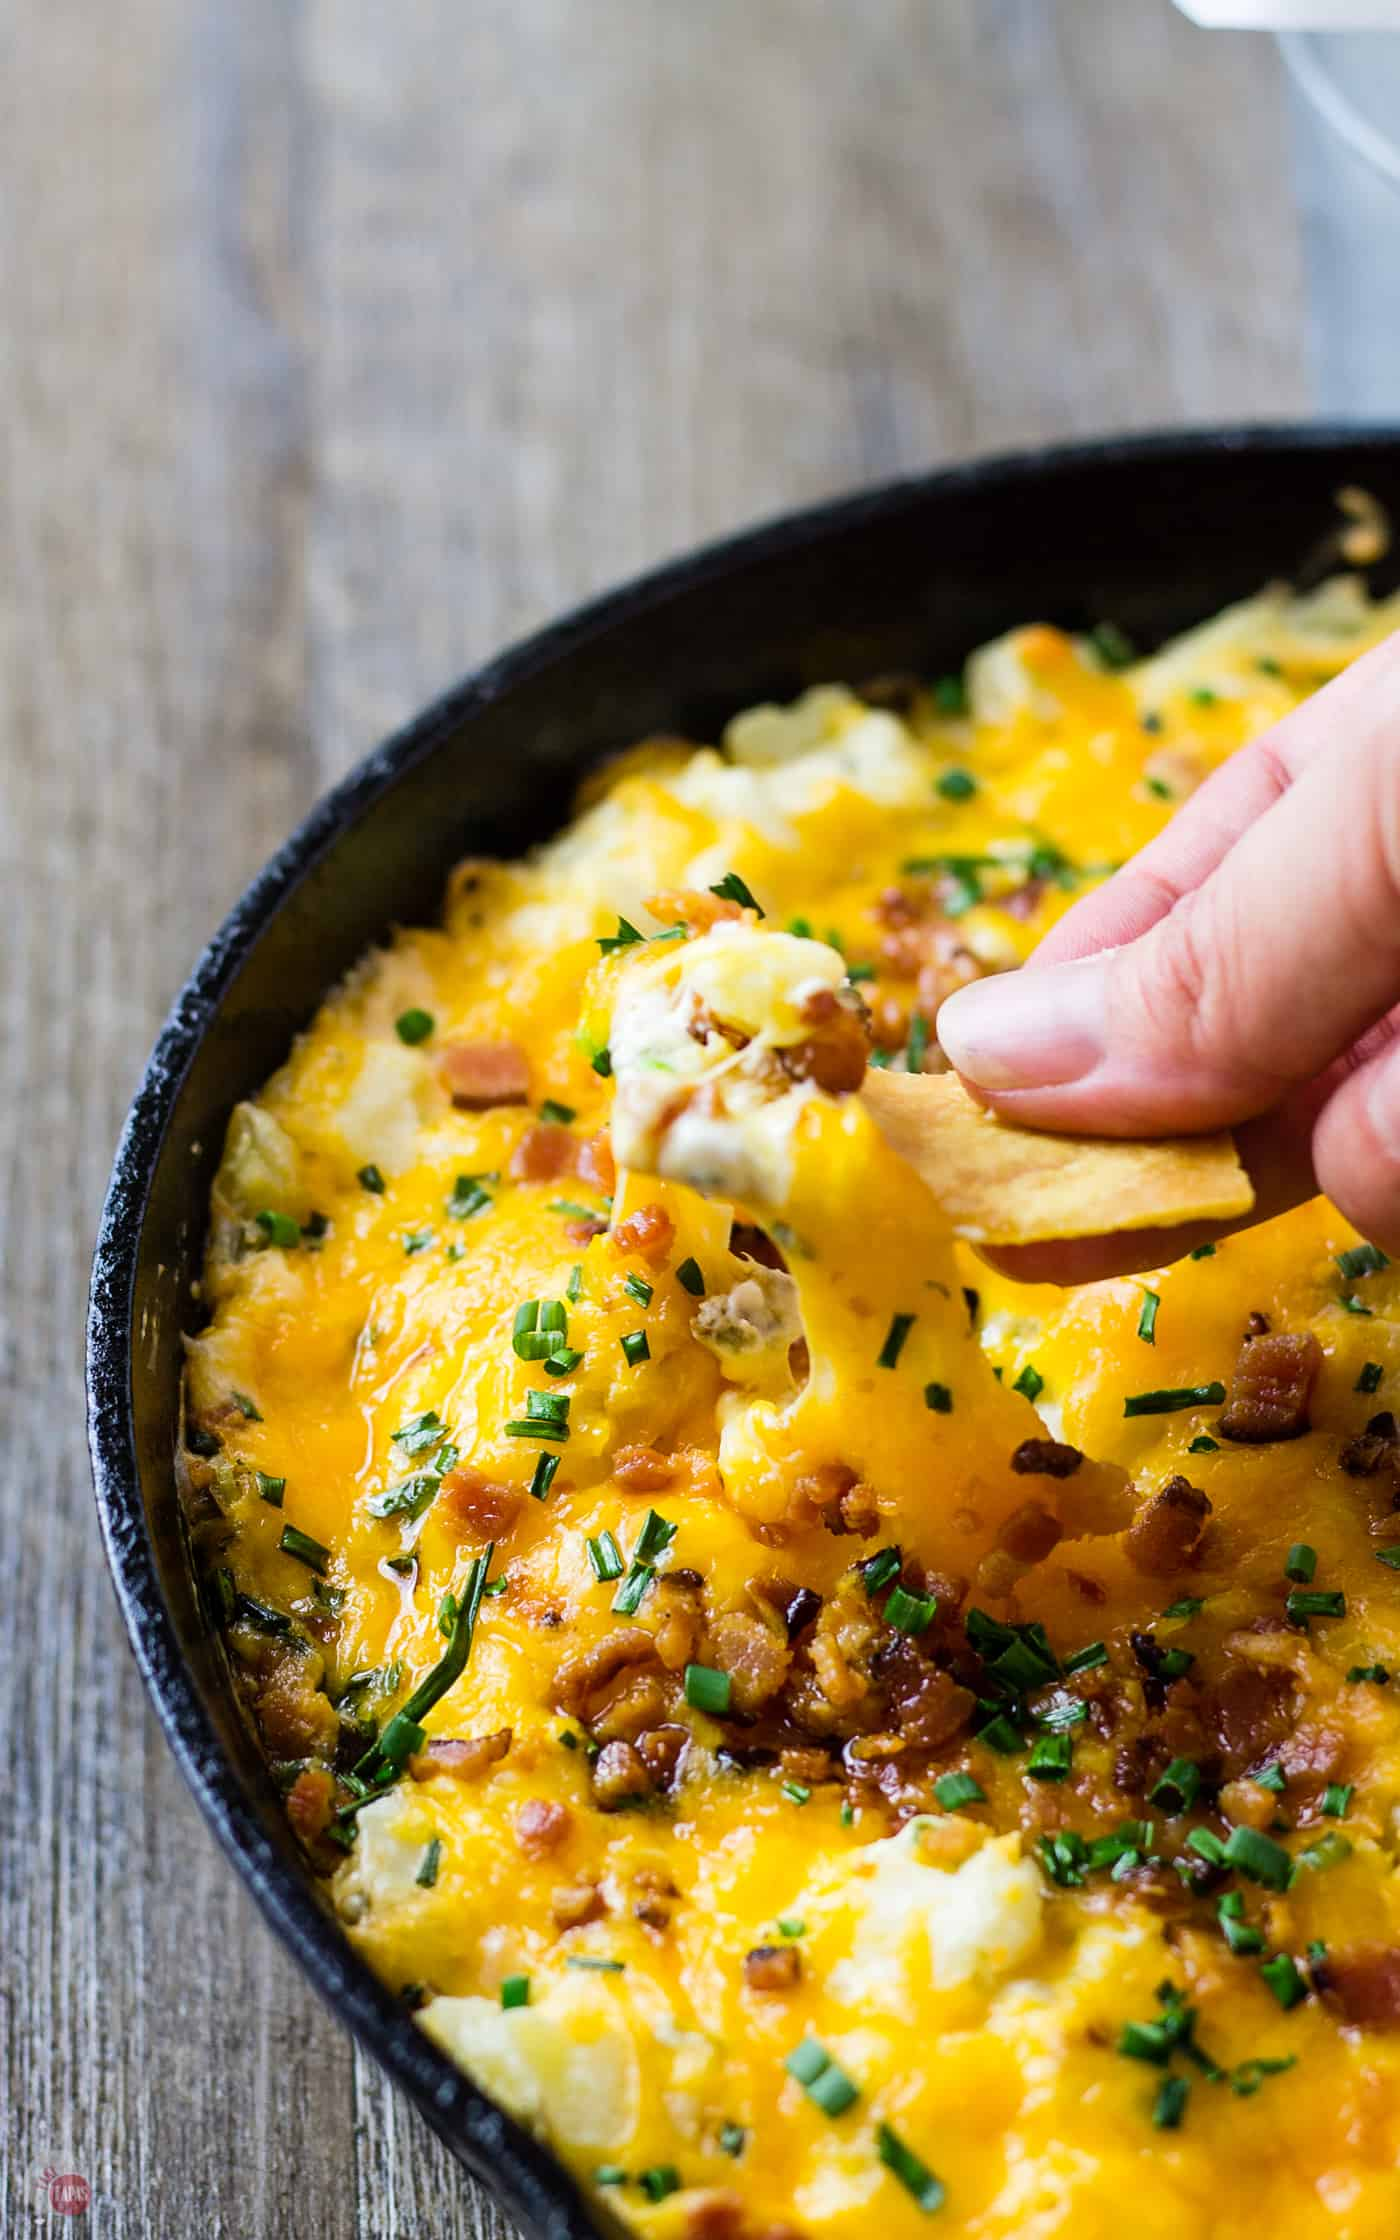 Like Potato Skins? Check out my Loaded Potato Skin Dip made in a skillet! | Take Two Tapas | #LoadedPotatoSkins #PotatoSkins #SkilletDip #Tailgating #Bacon #Potatoes #Cheese